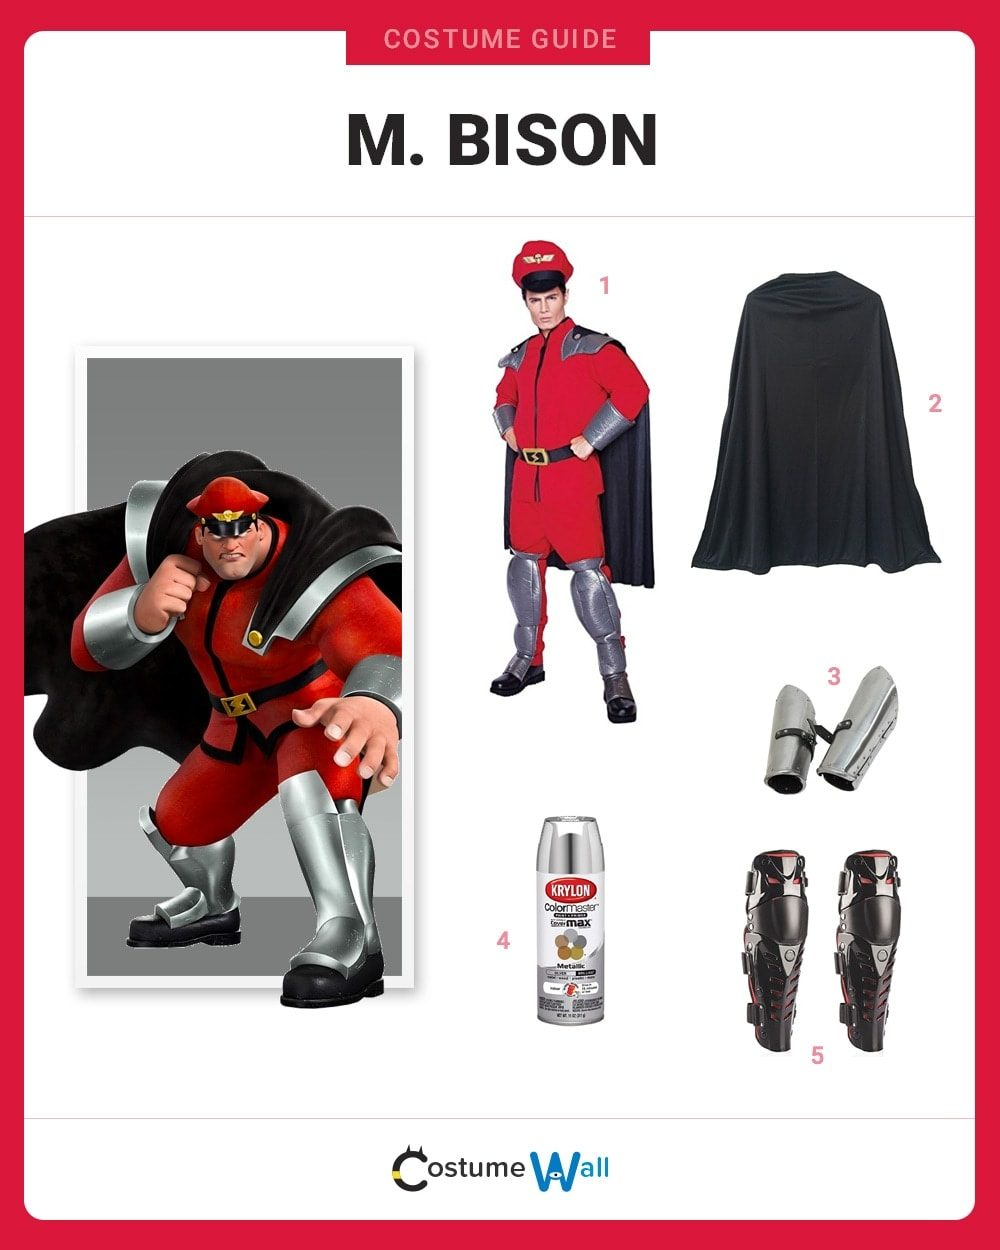 M. Bison Costume Guide